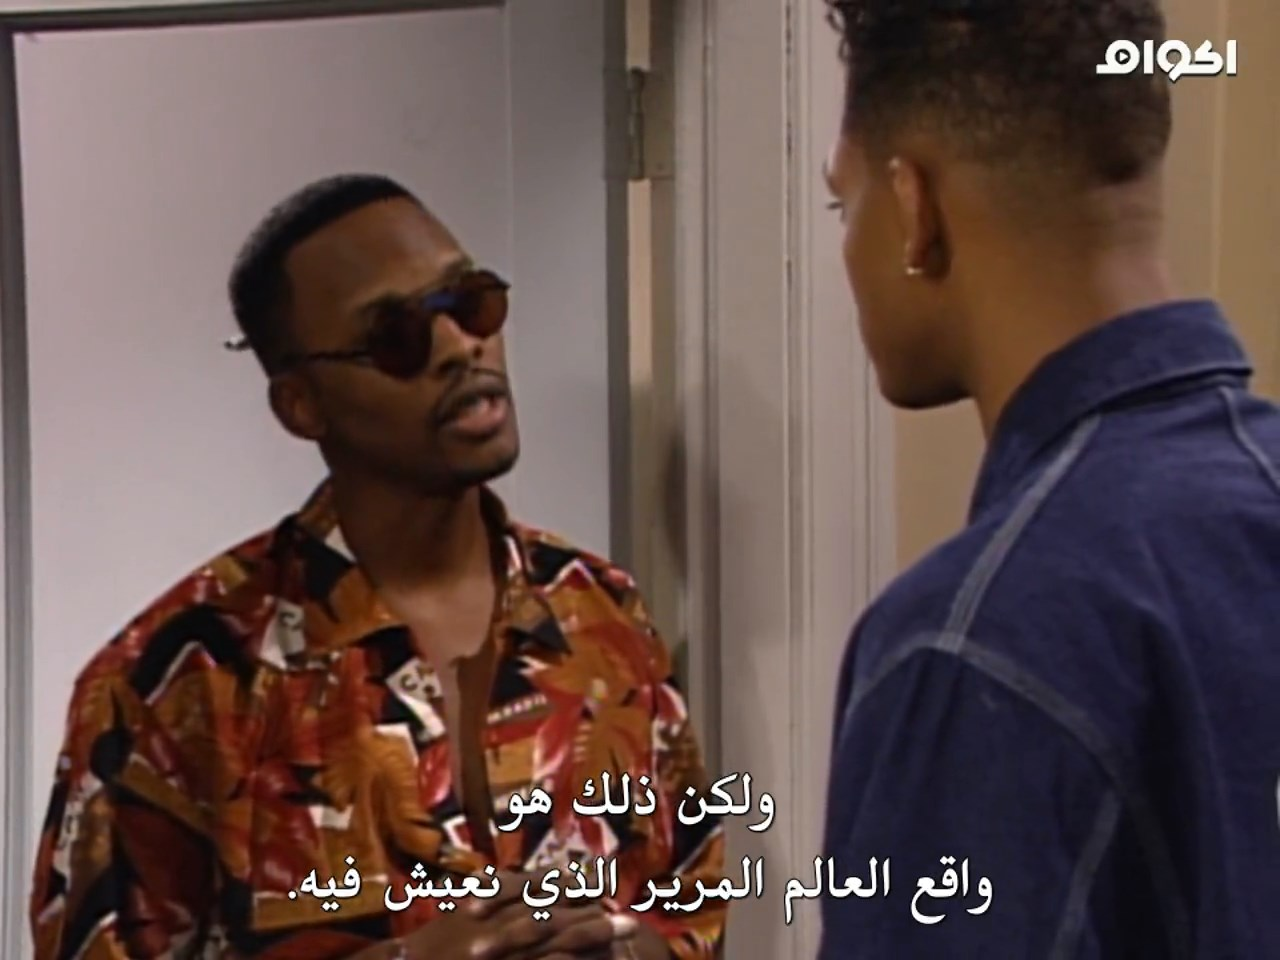 The Fresh Prince of Bel-Air,The Fresh Prince of Bel-Air S03,The Fresh Prince of Bel-Air Season 3,The Fresh Prince of Bel-Air مترجم,The Fresh Prince of Bel-Air Will Smith,ويل سميث